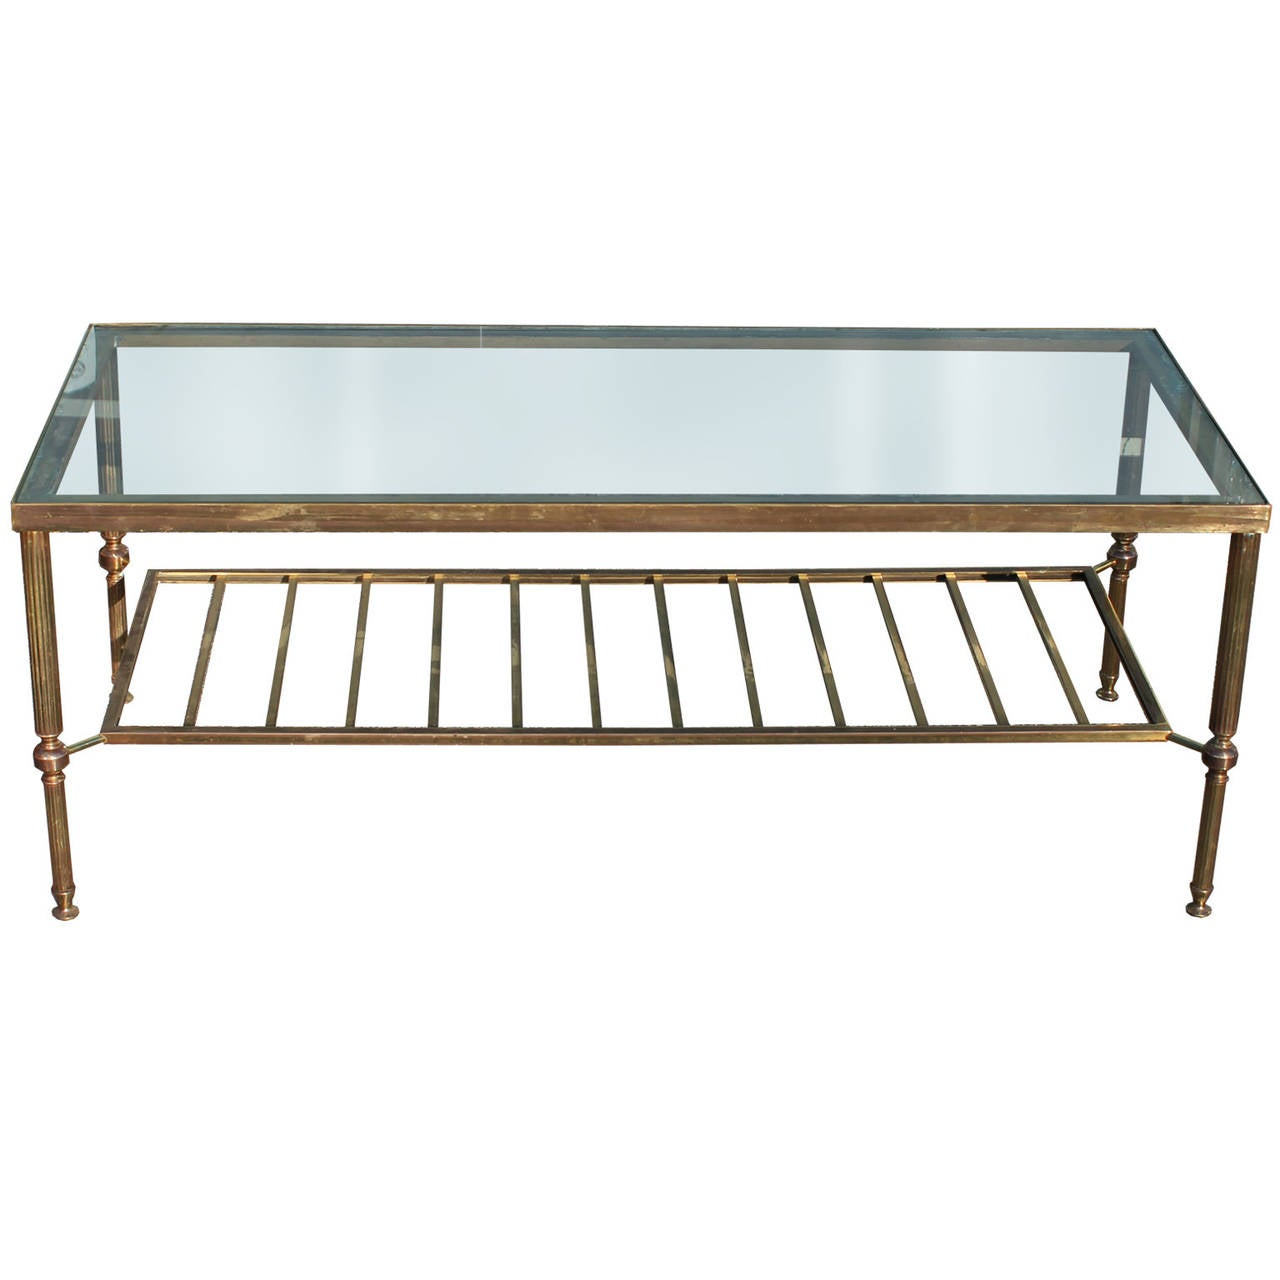 Elegant Brass And Glass Coffee Table At 1stdibs